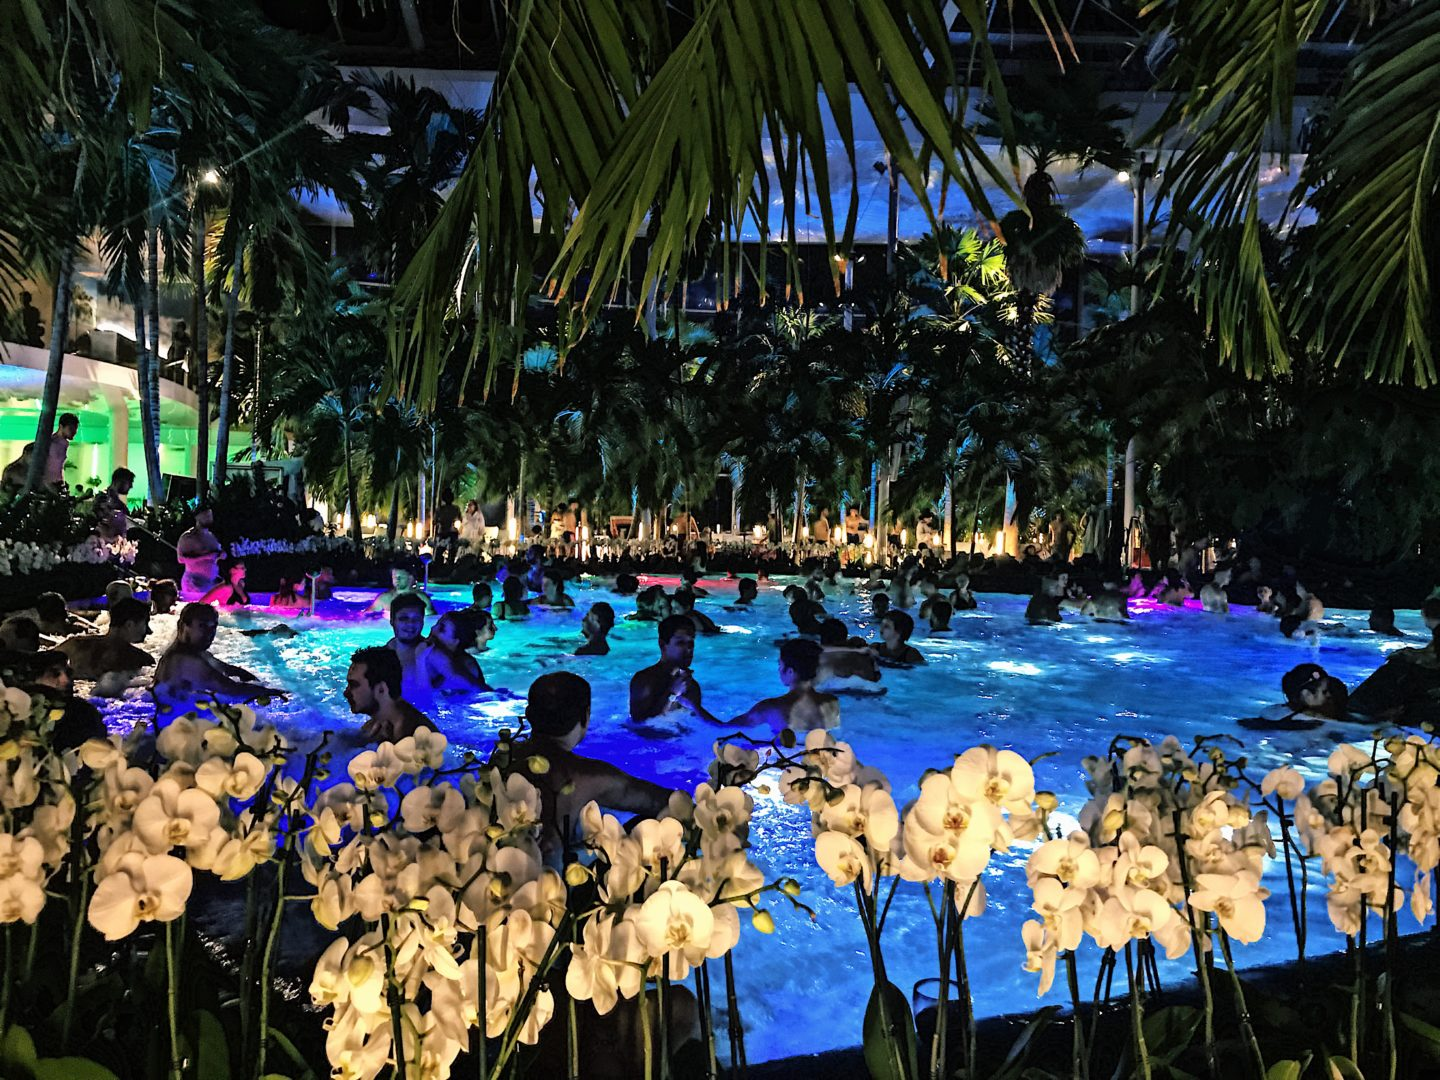 Top Tips for Visiting Bucharest's Therme Spa